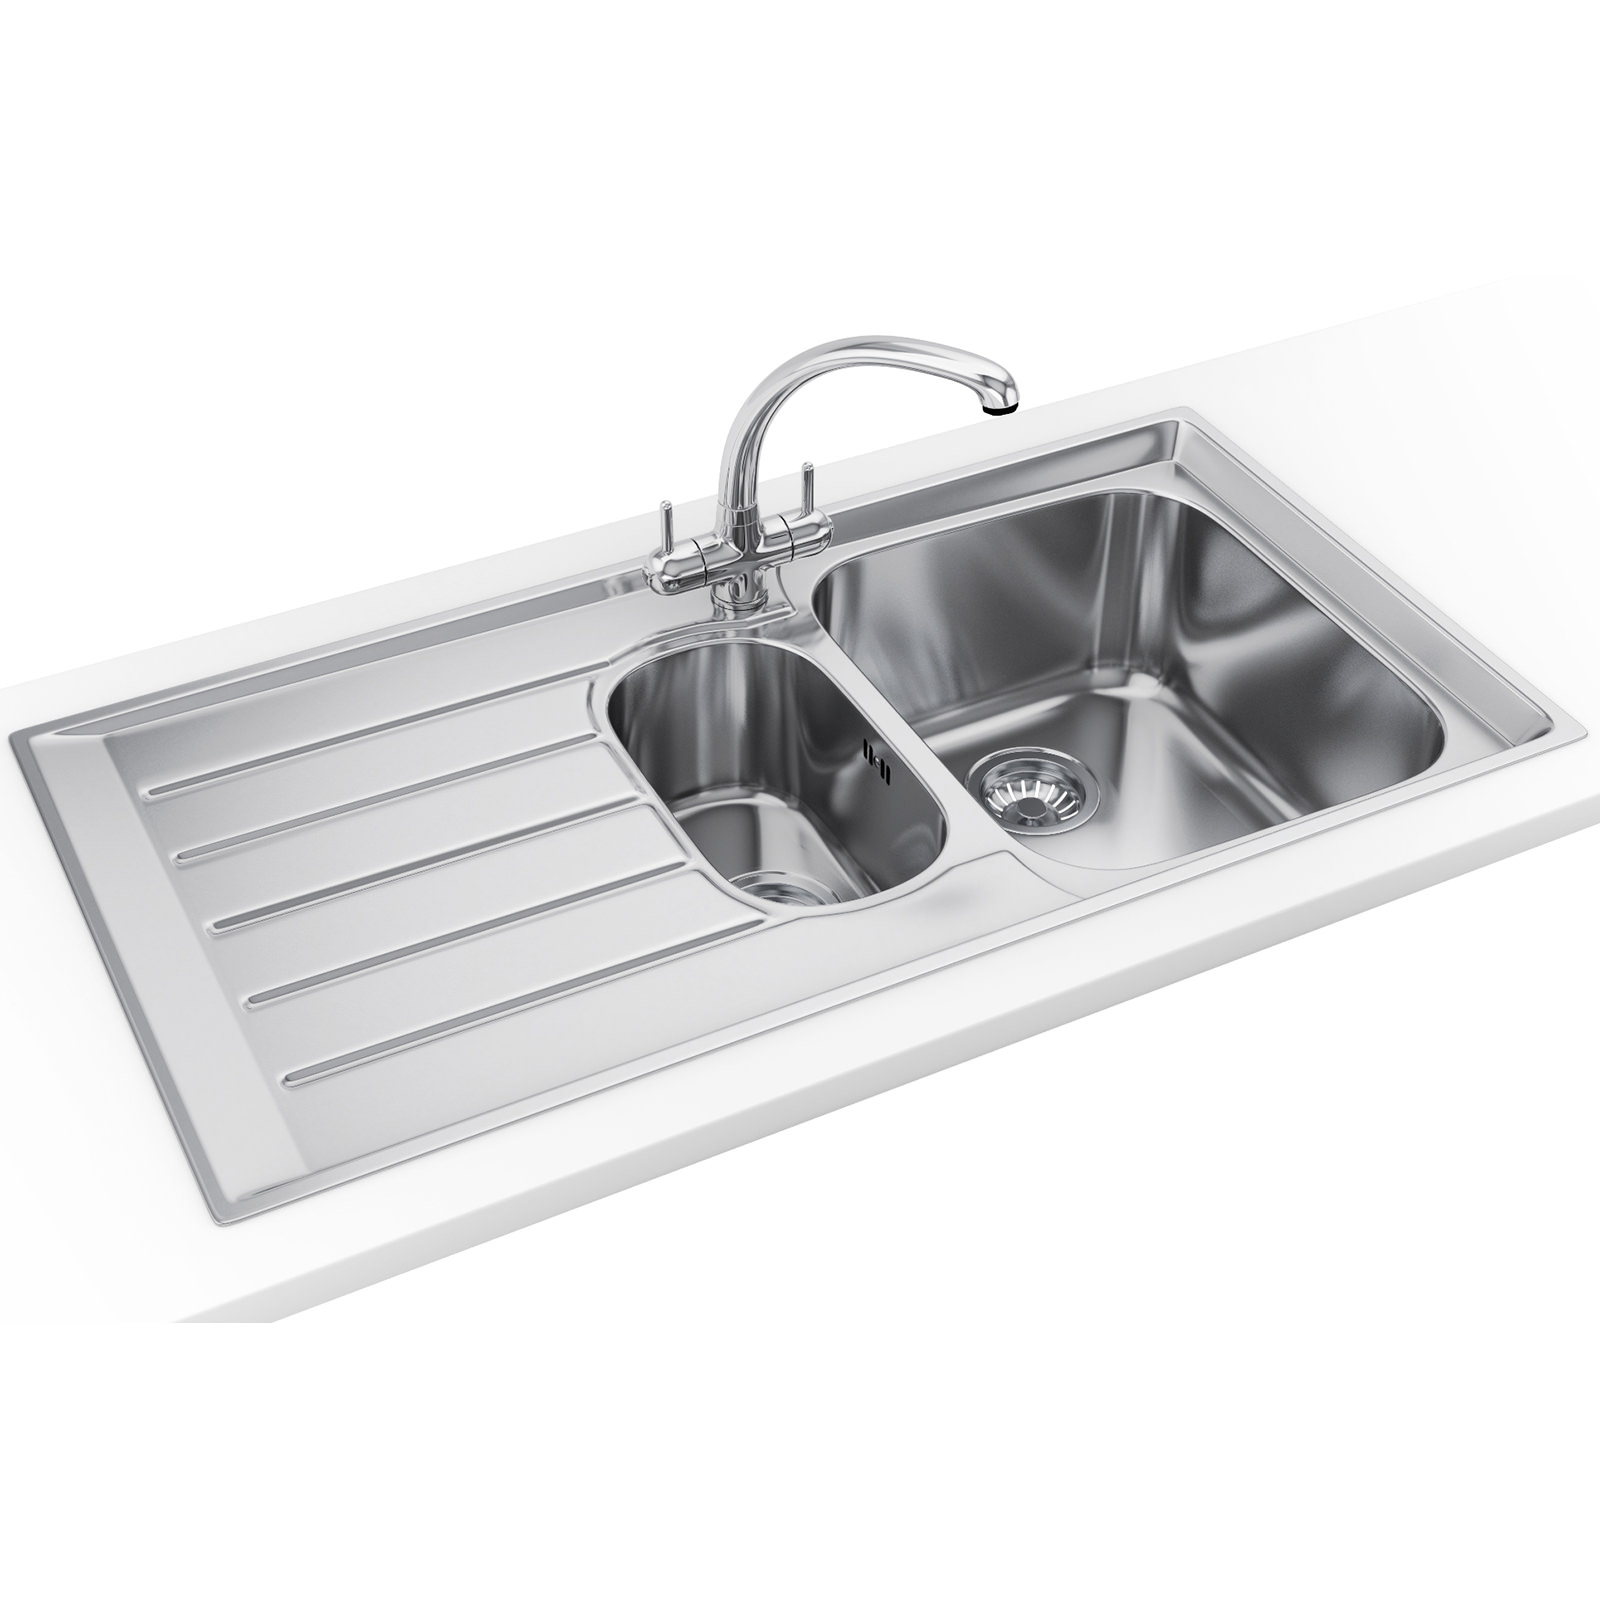 Franke Sinks And Taps : Franke Neptune Propack NEX 251 Stainless Steel Kitchen Sink And Tap